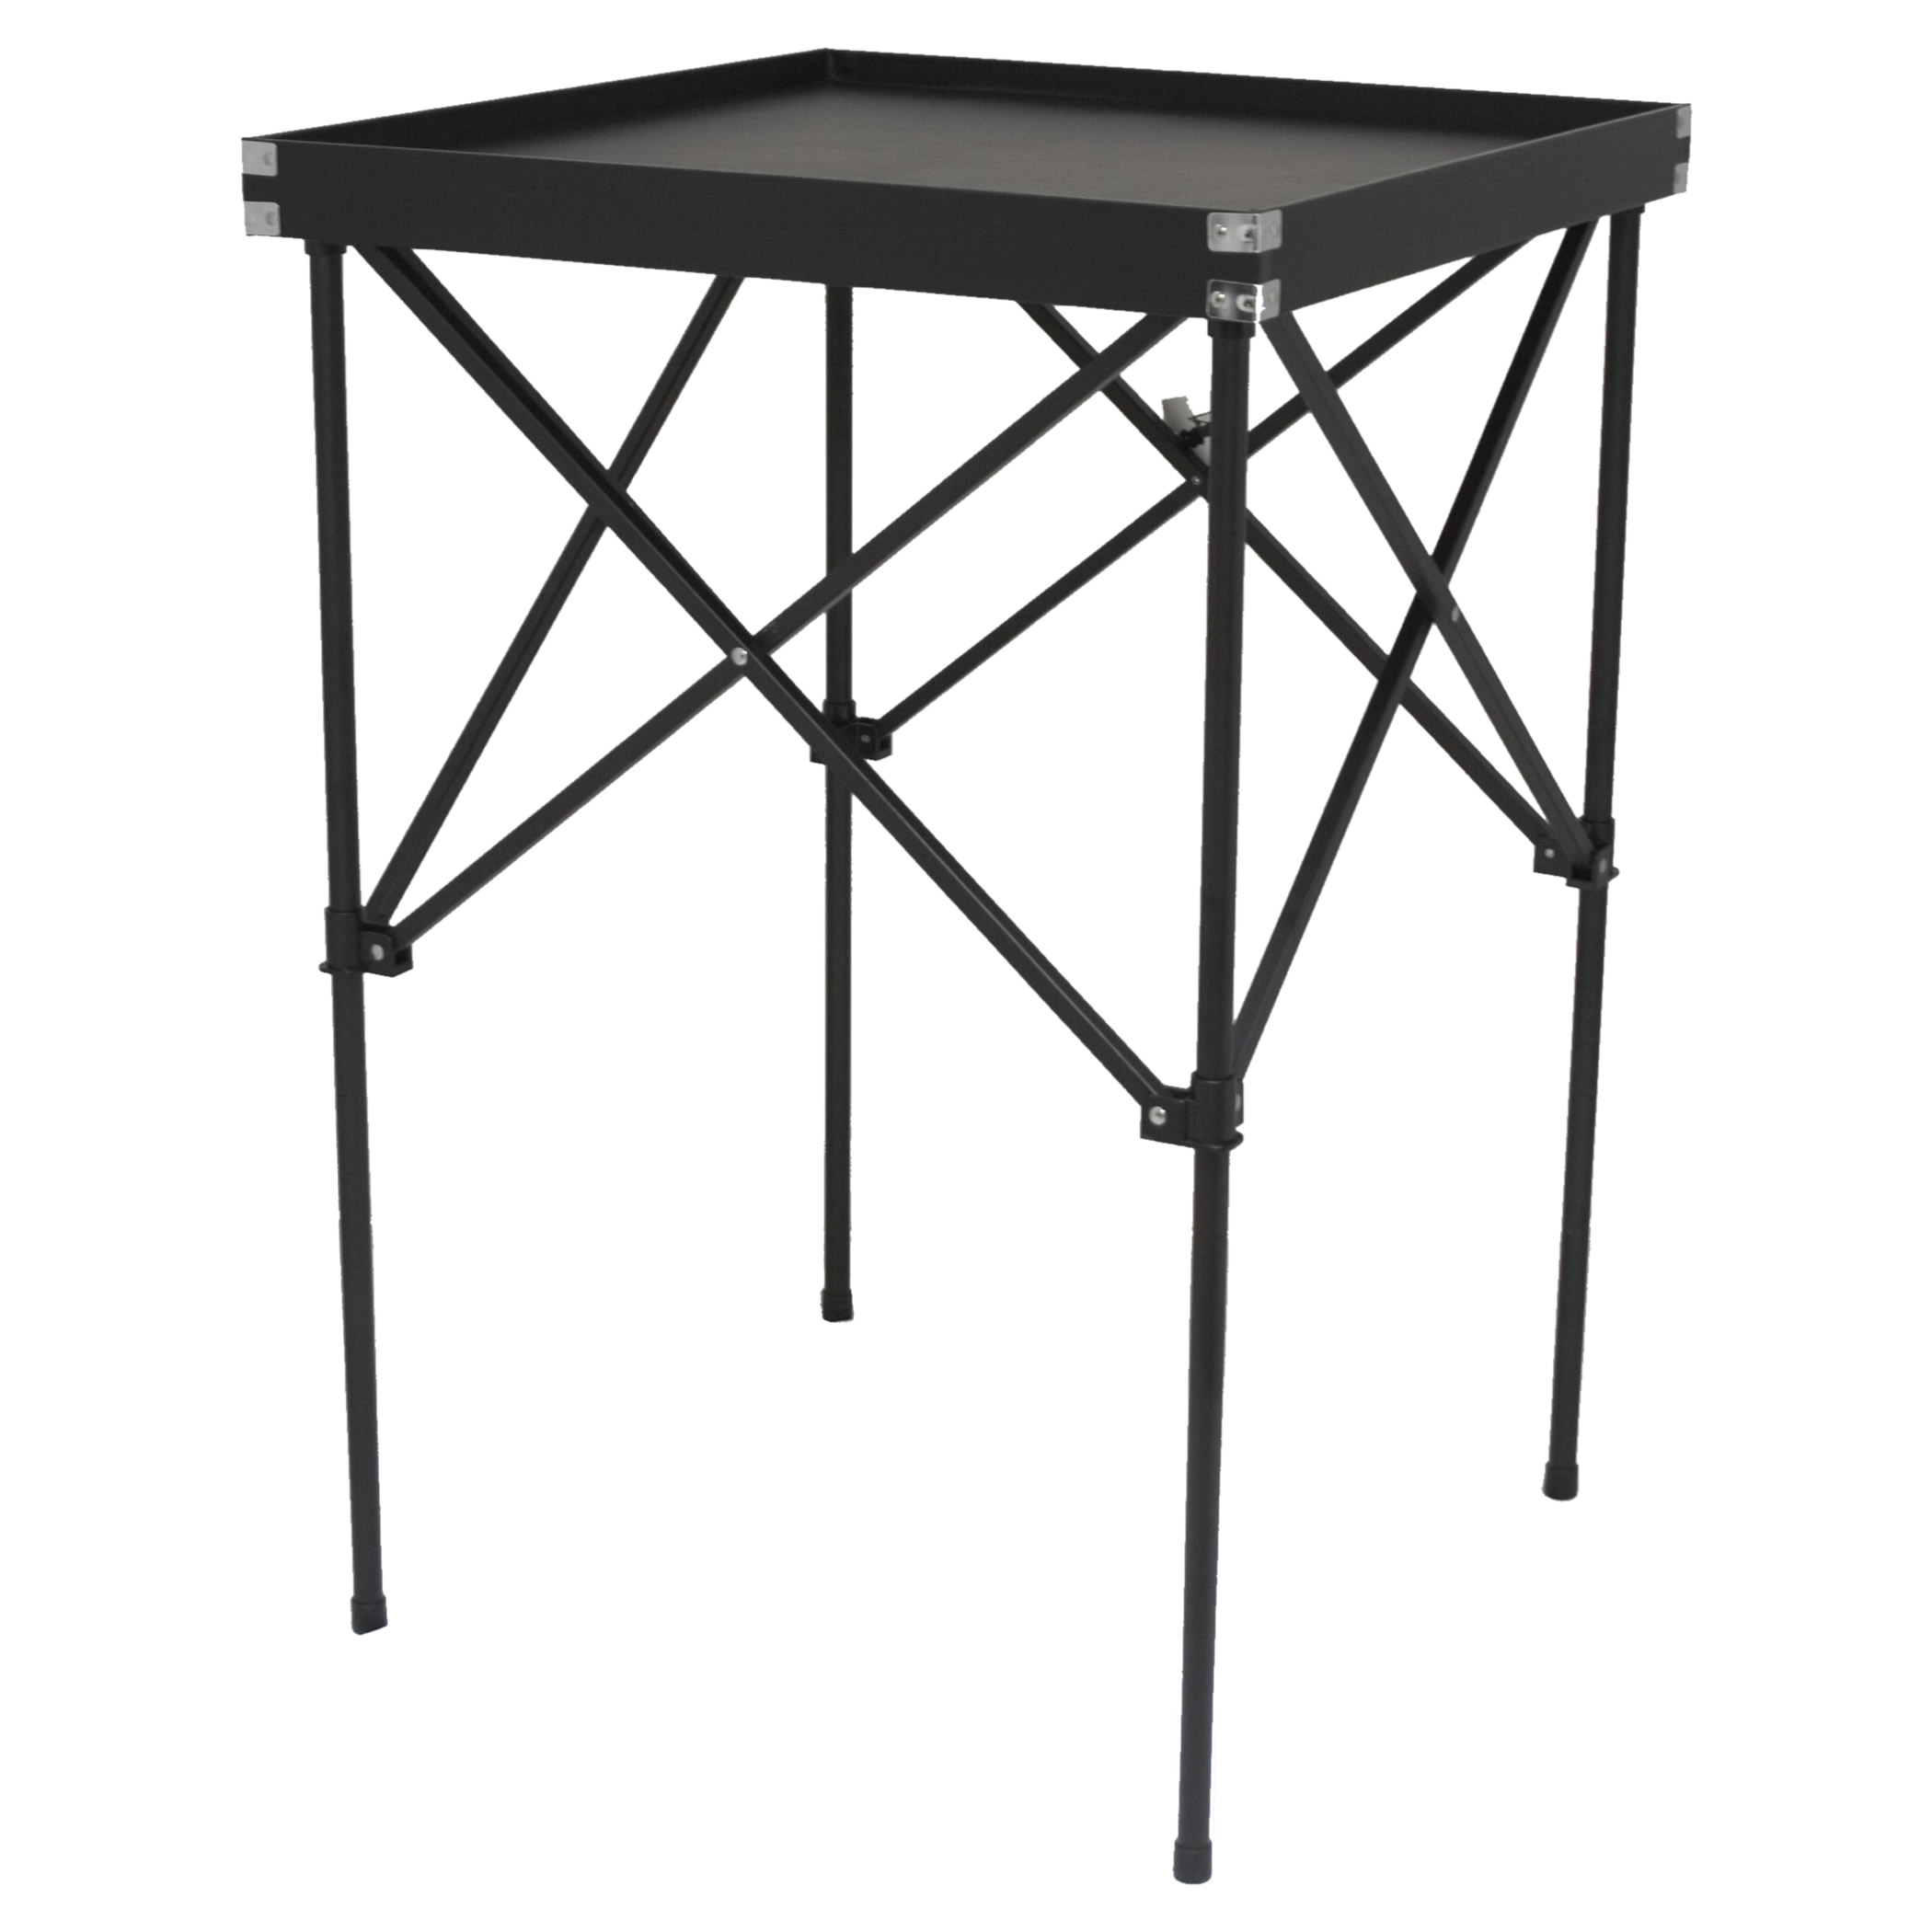 Hiker black portable makeup table stand free shipping for Table stand i 52 compose